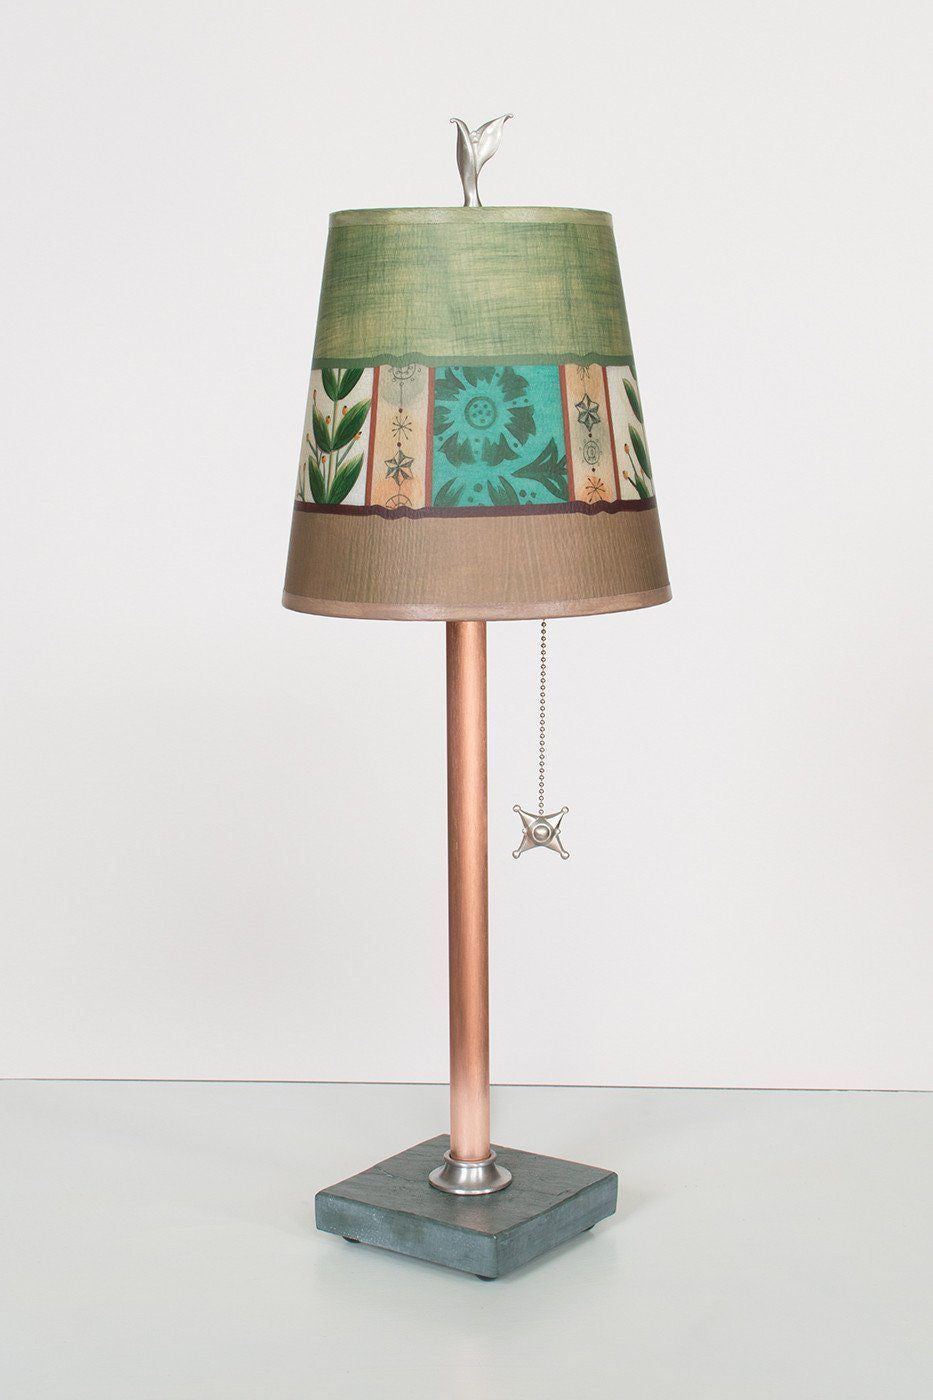 Copper Table Lamp on Vermont Slate Base with Small Drum Shade in Spring Medley Apple Lit